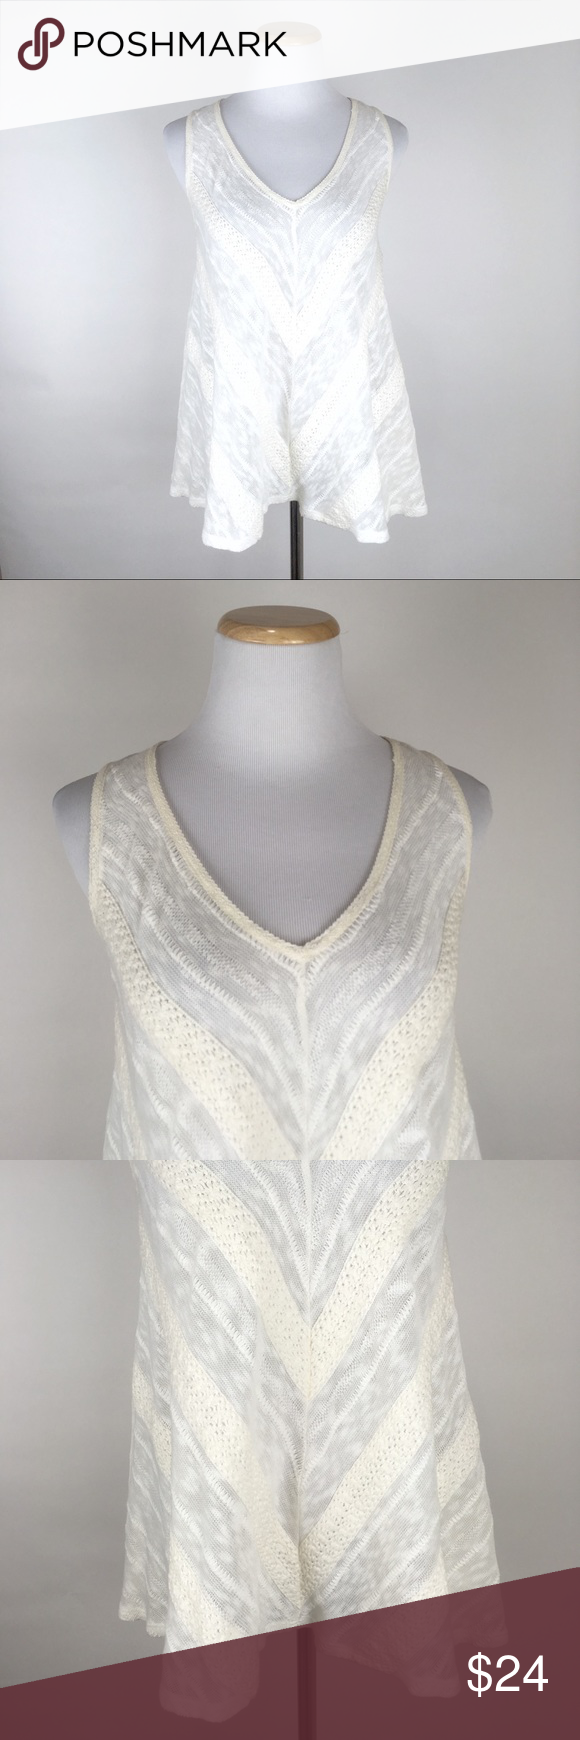 Tank top wedding dresses  ANTHROPOLOGIE Meadow Rue Sheer Knit Tank Top Lace  Knitted tank top